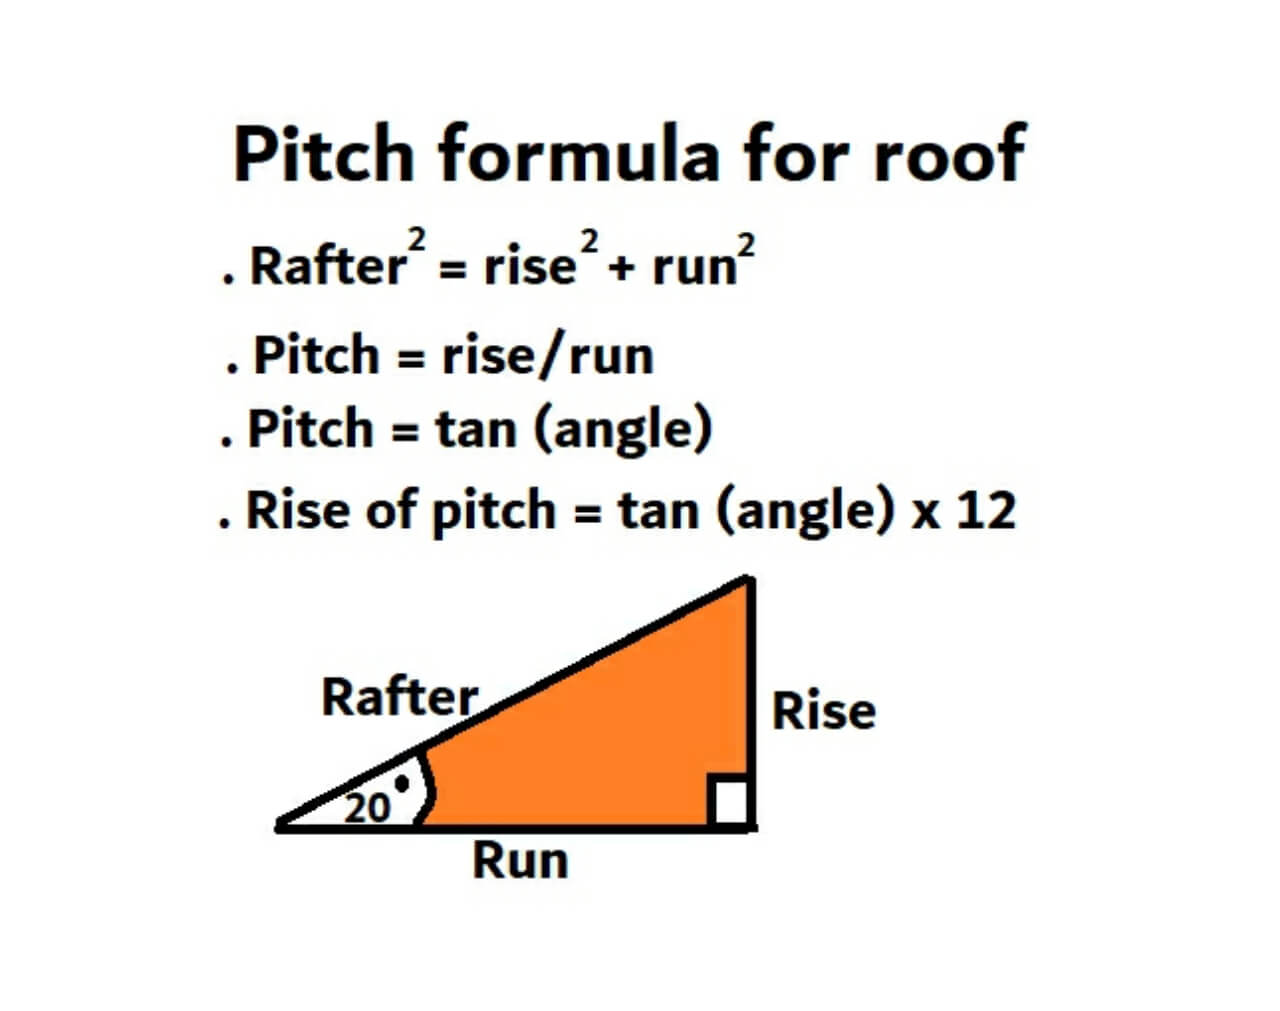 Pitch formula for roof